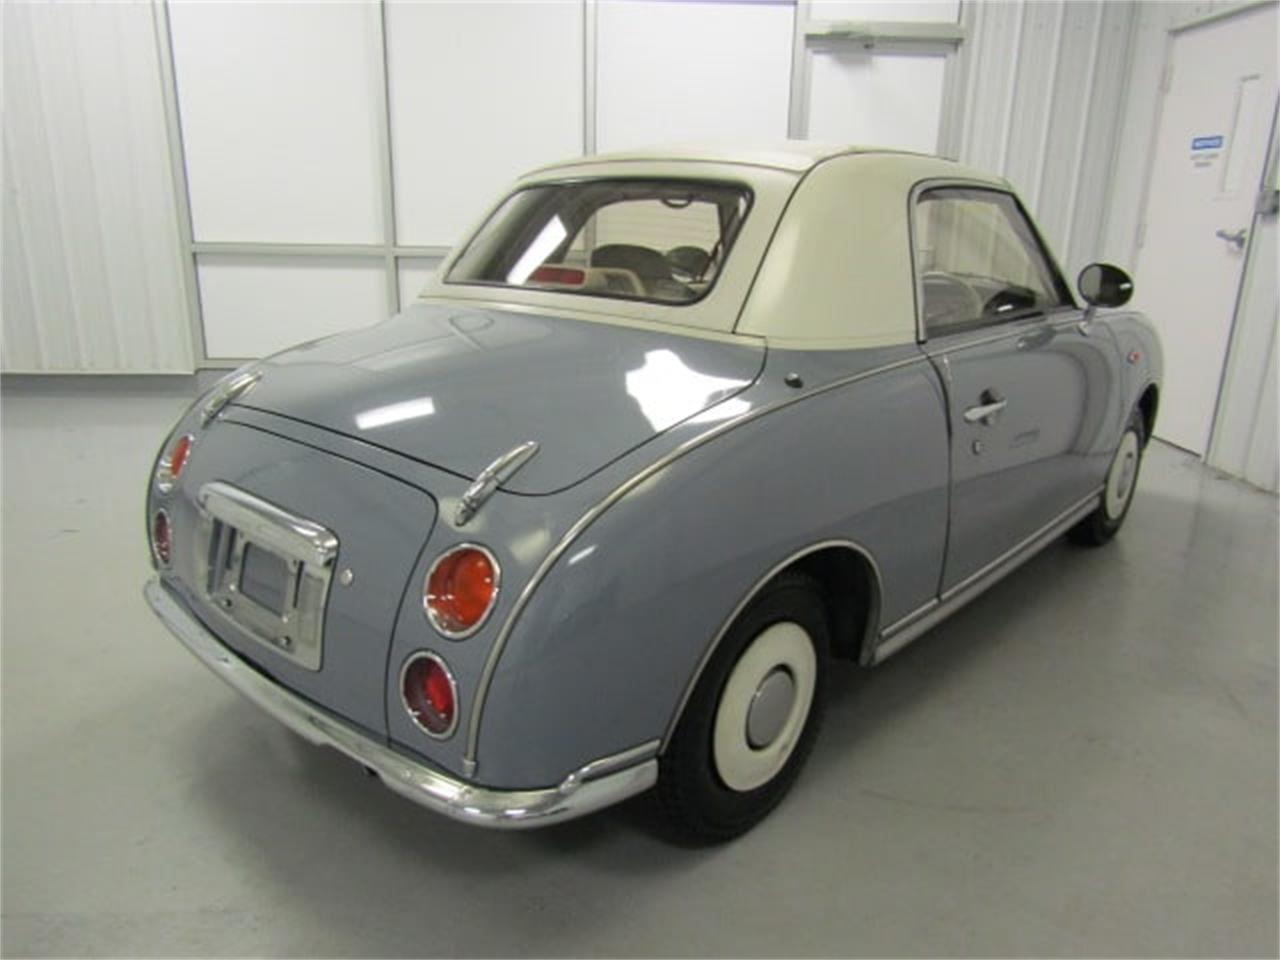 Large Picture of '91 Nissan Figaro - $21,900.00 Offered by Duncan Imports & Classic Cars - LI27